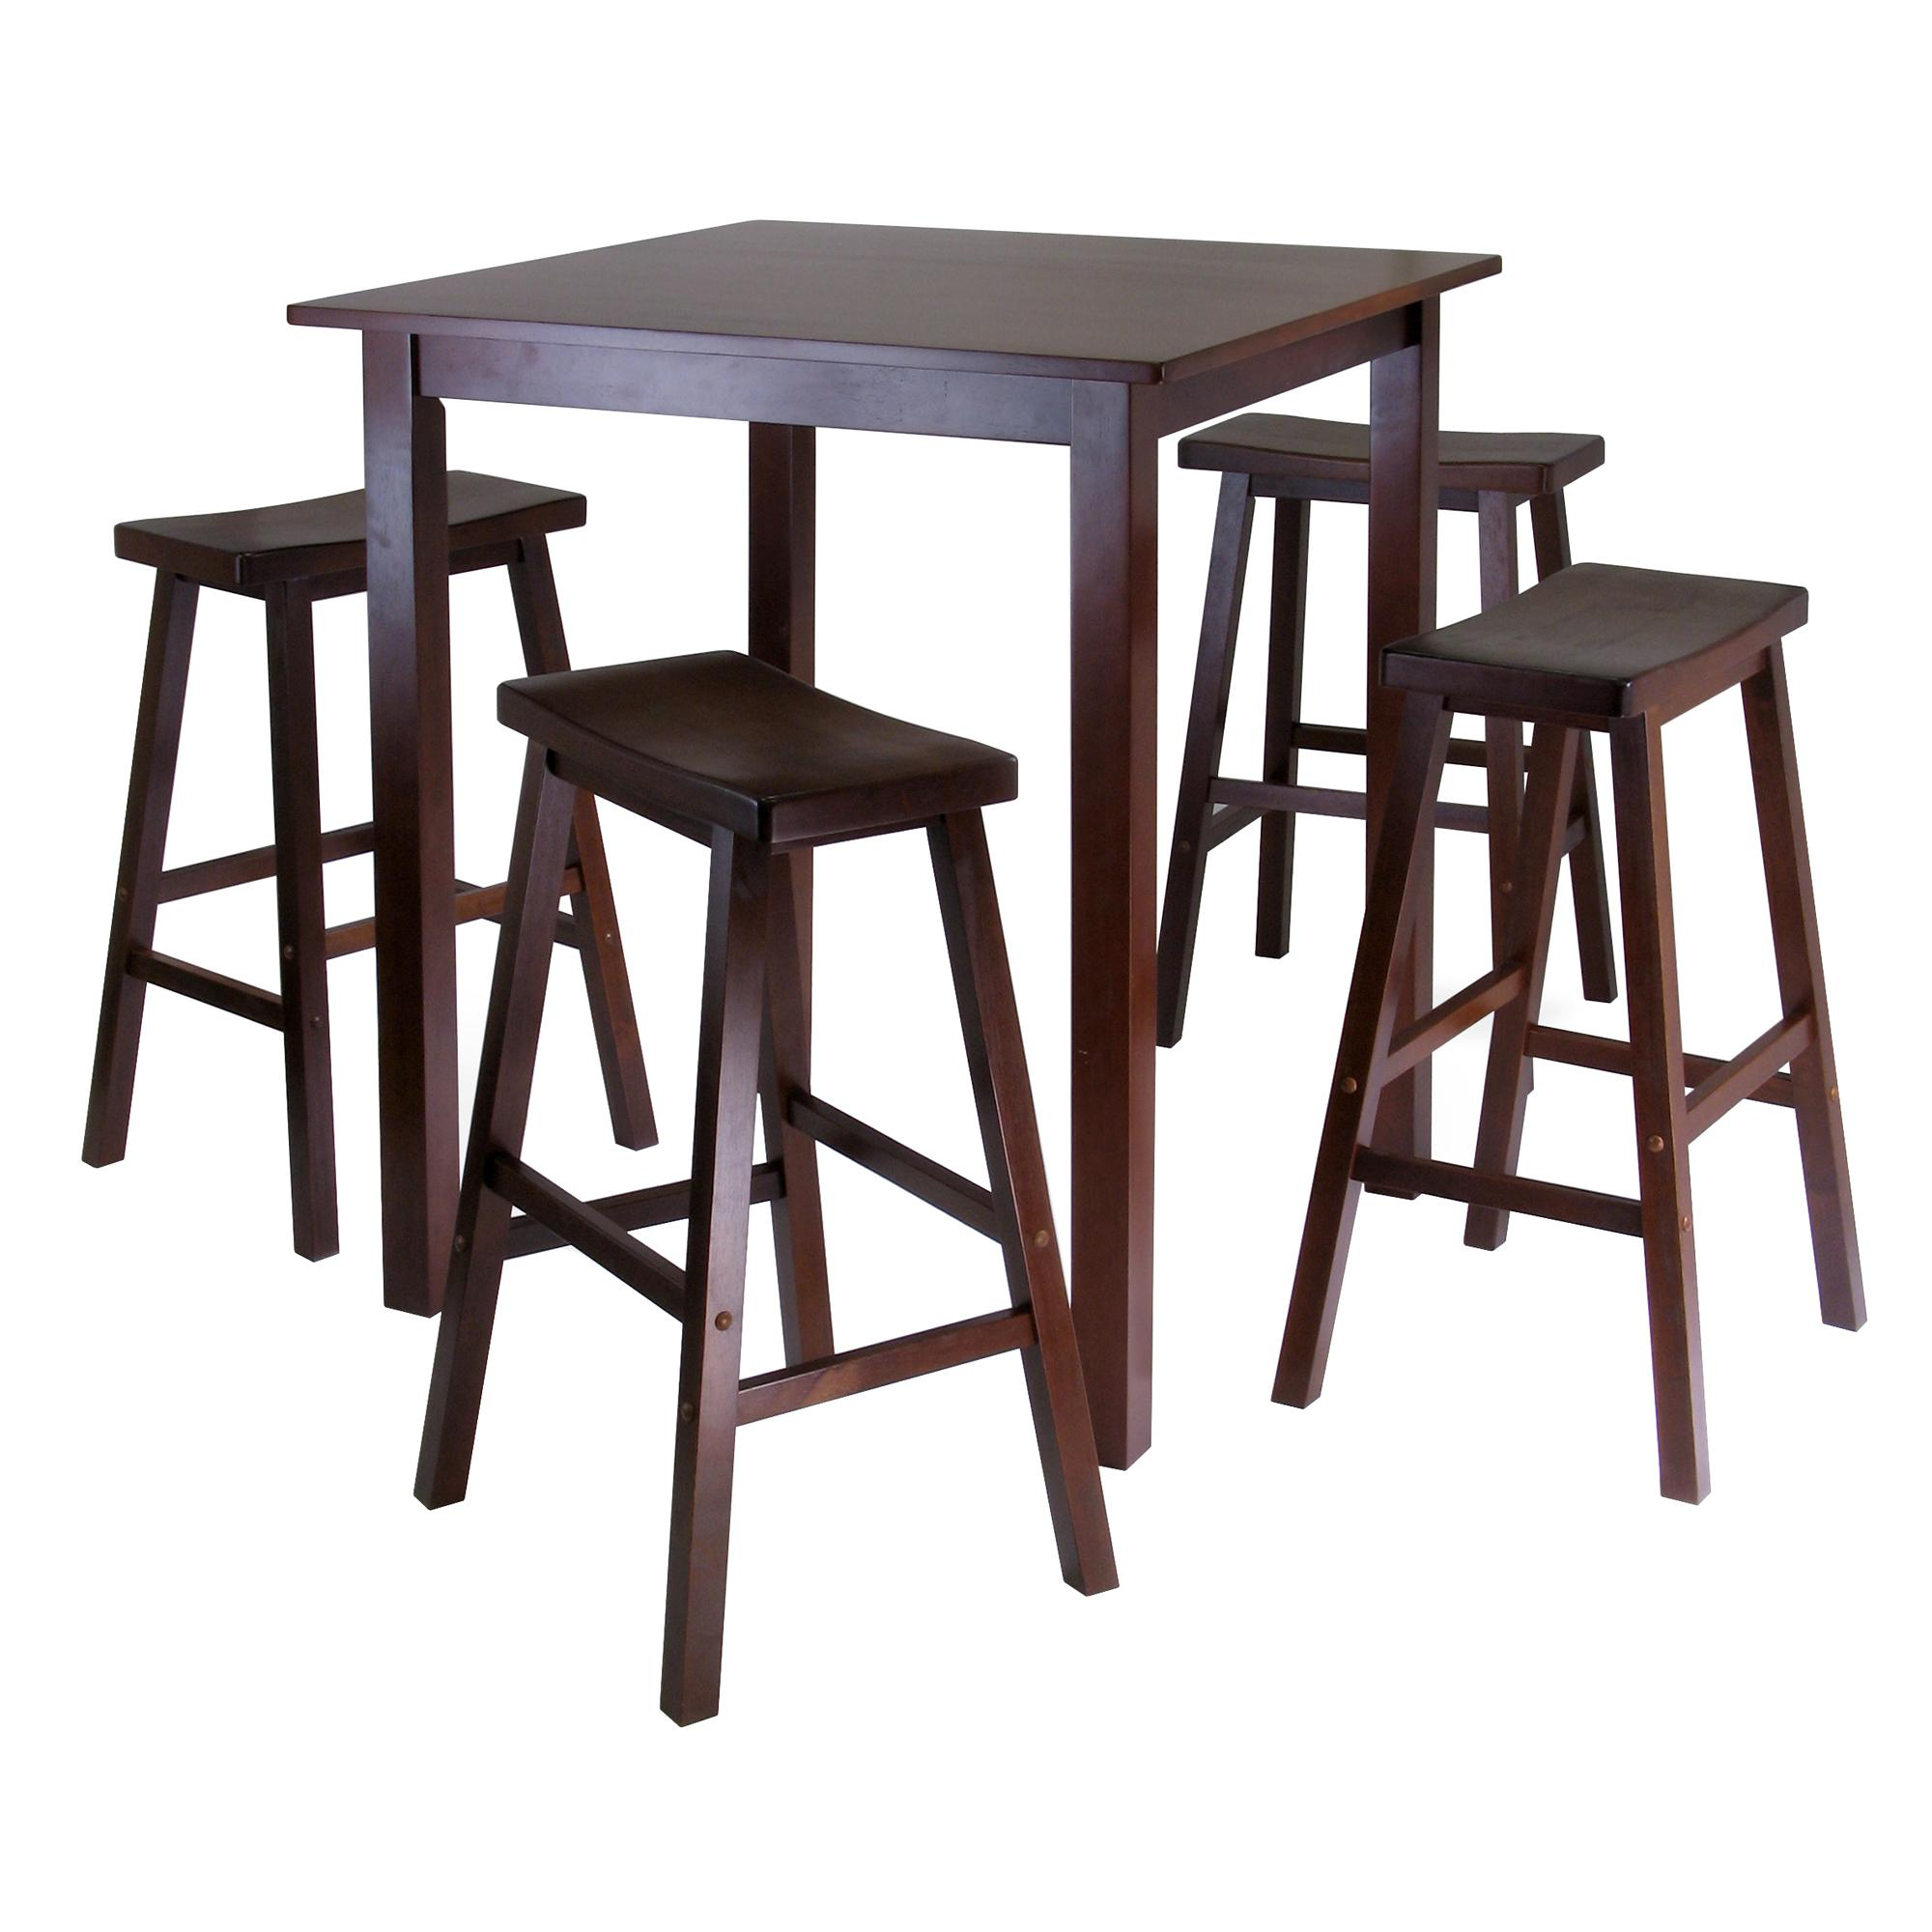 View larger  sc 1 st  Amazon.com & Amazon.com: Winsomeu0027s Parkland 5-Piece Square High/Pub Table Set in ...